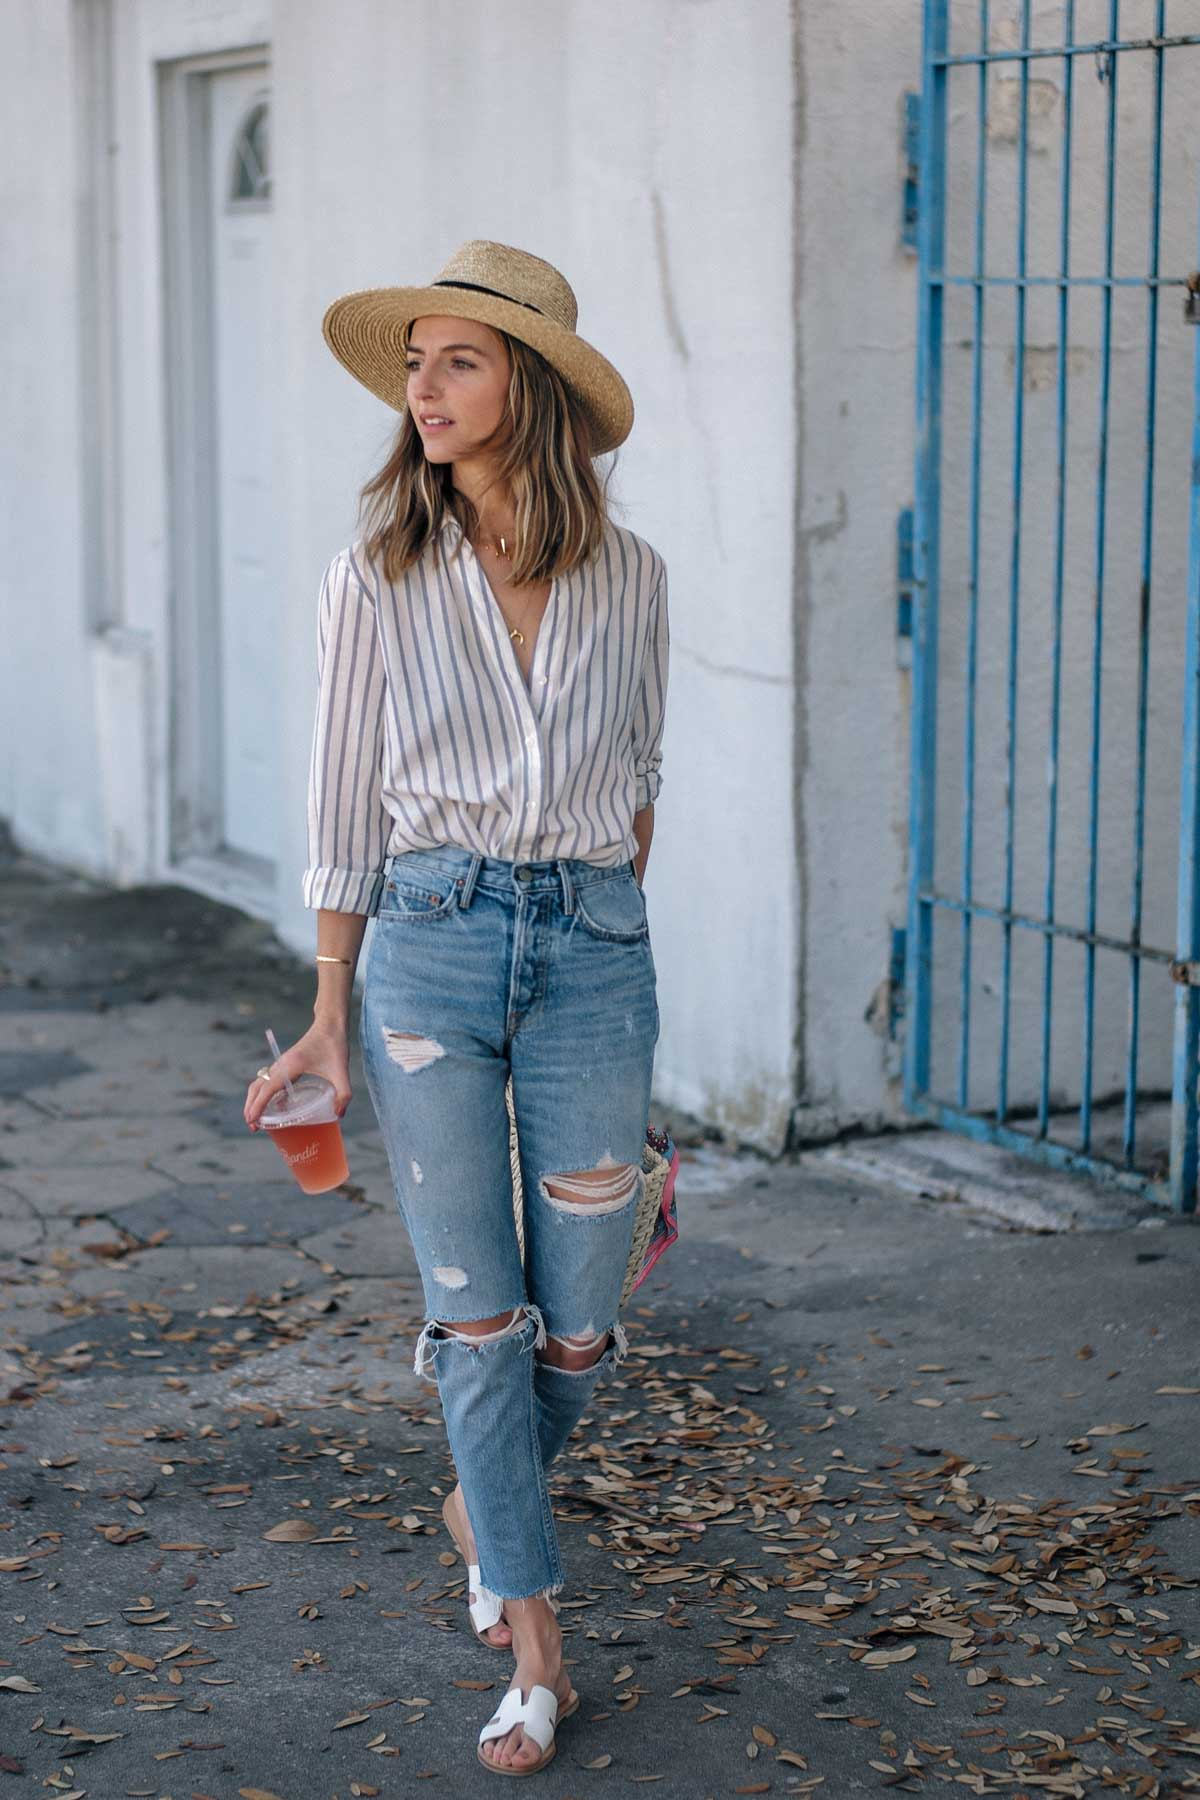 Jess Ann Kirby packed GRLFND jeans and a striped button down for her trip to Saint Petersburg